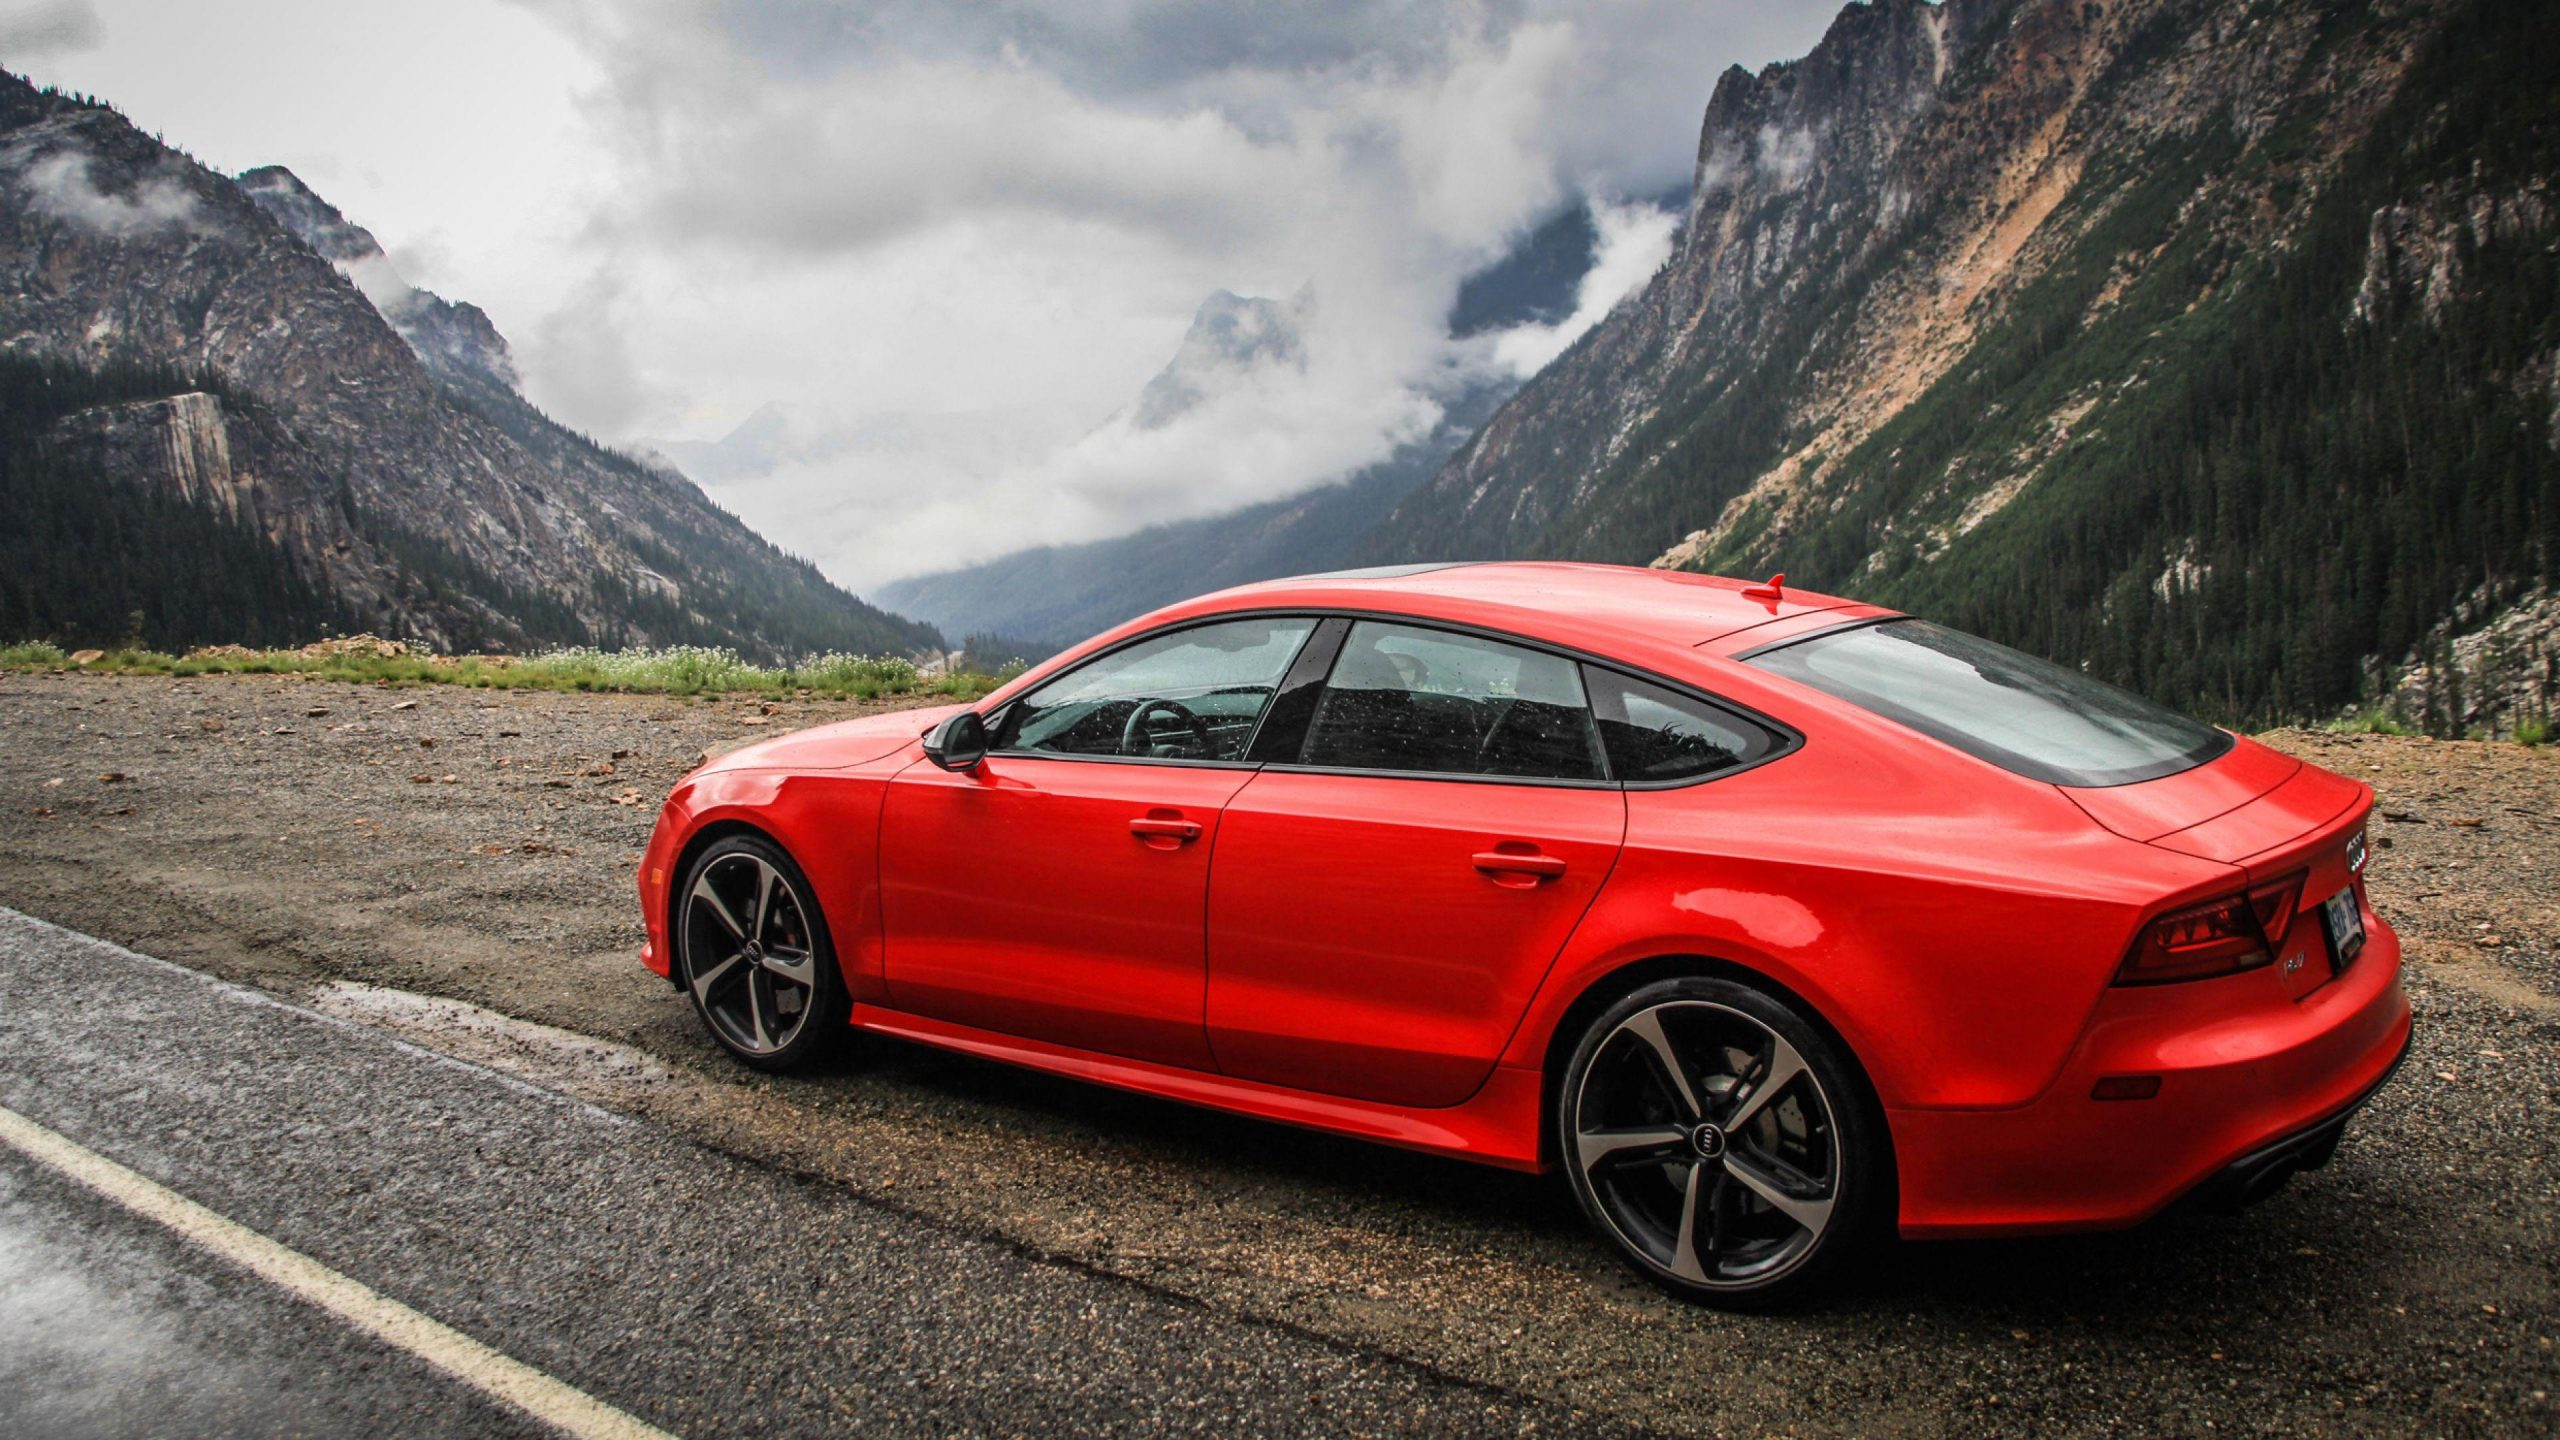 Audi Rs7 Wallpapers Free Pictures On Greepx